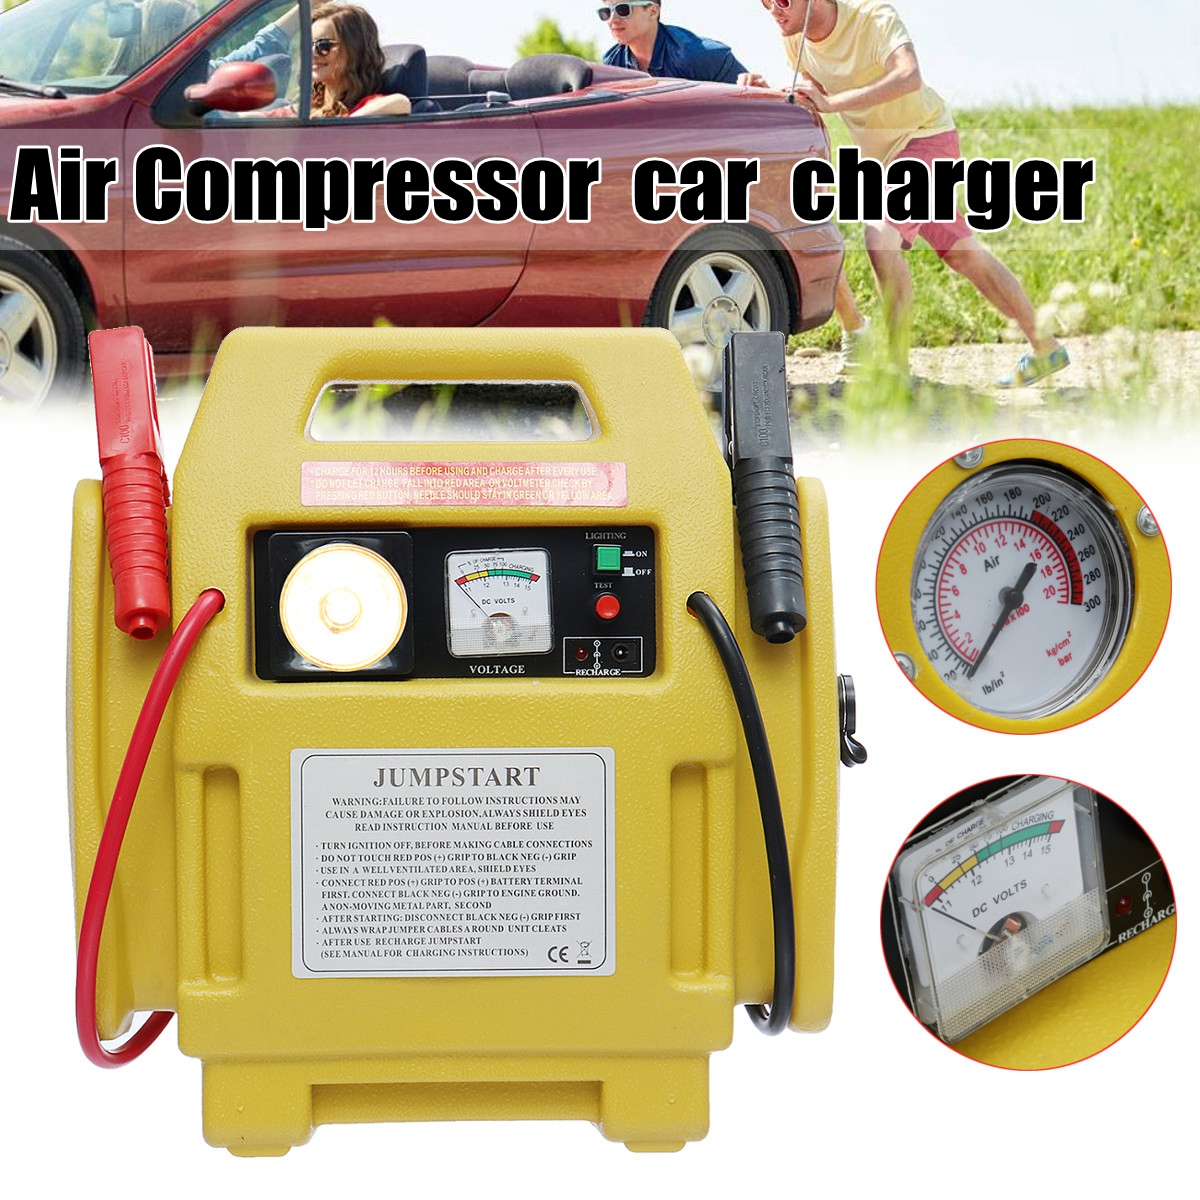 Portable 12V Car Jump Starter Battery Start Booster Charger Leads Air Compressor free shipping high insulation parts 1200 amp car hand tool heavy duty battery jump starter booster leads cables clips ad1018